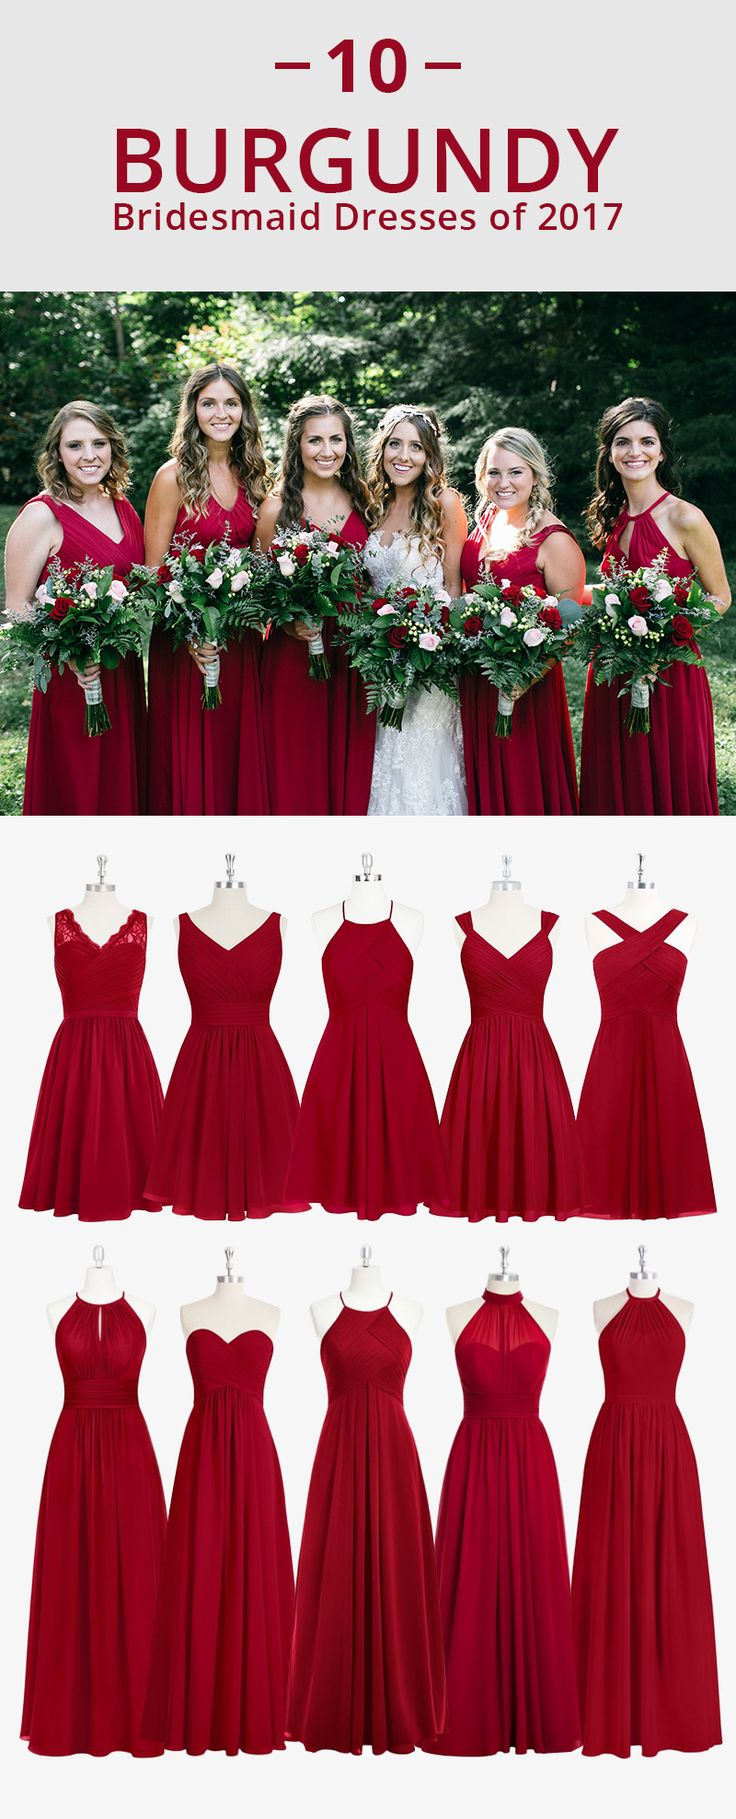 Dress your bridesmaids in the rich red! Shop from over 200 styles, available in sizes 0-30 and free custom sizing!